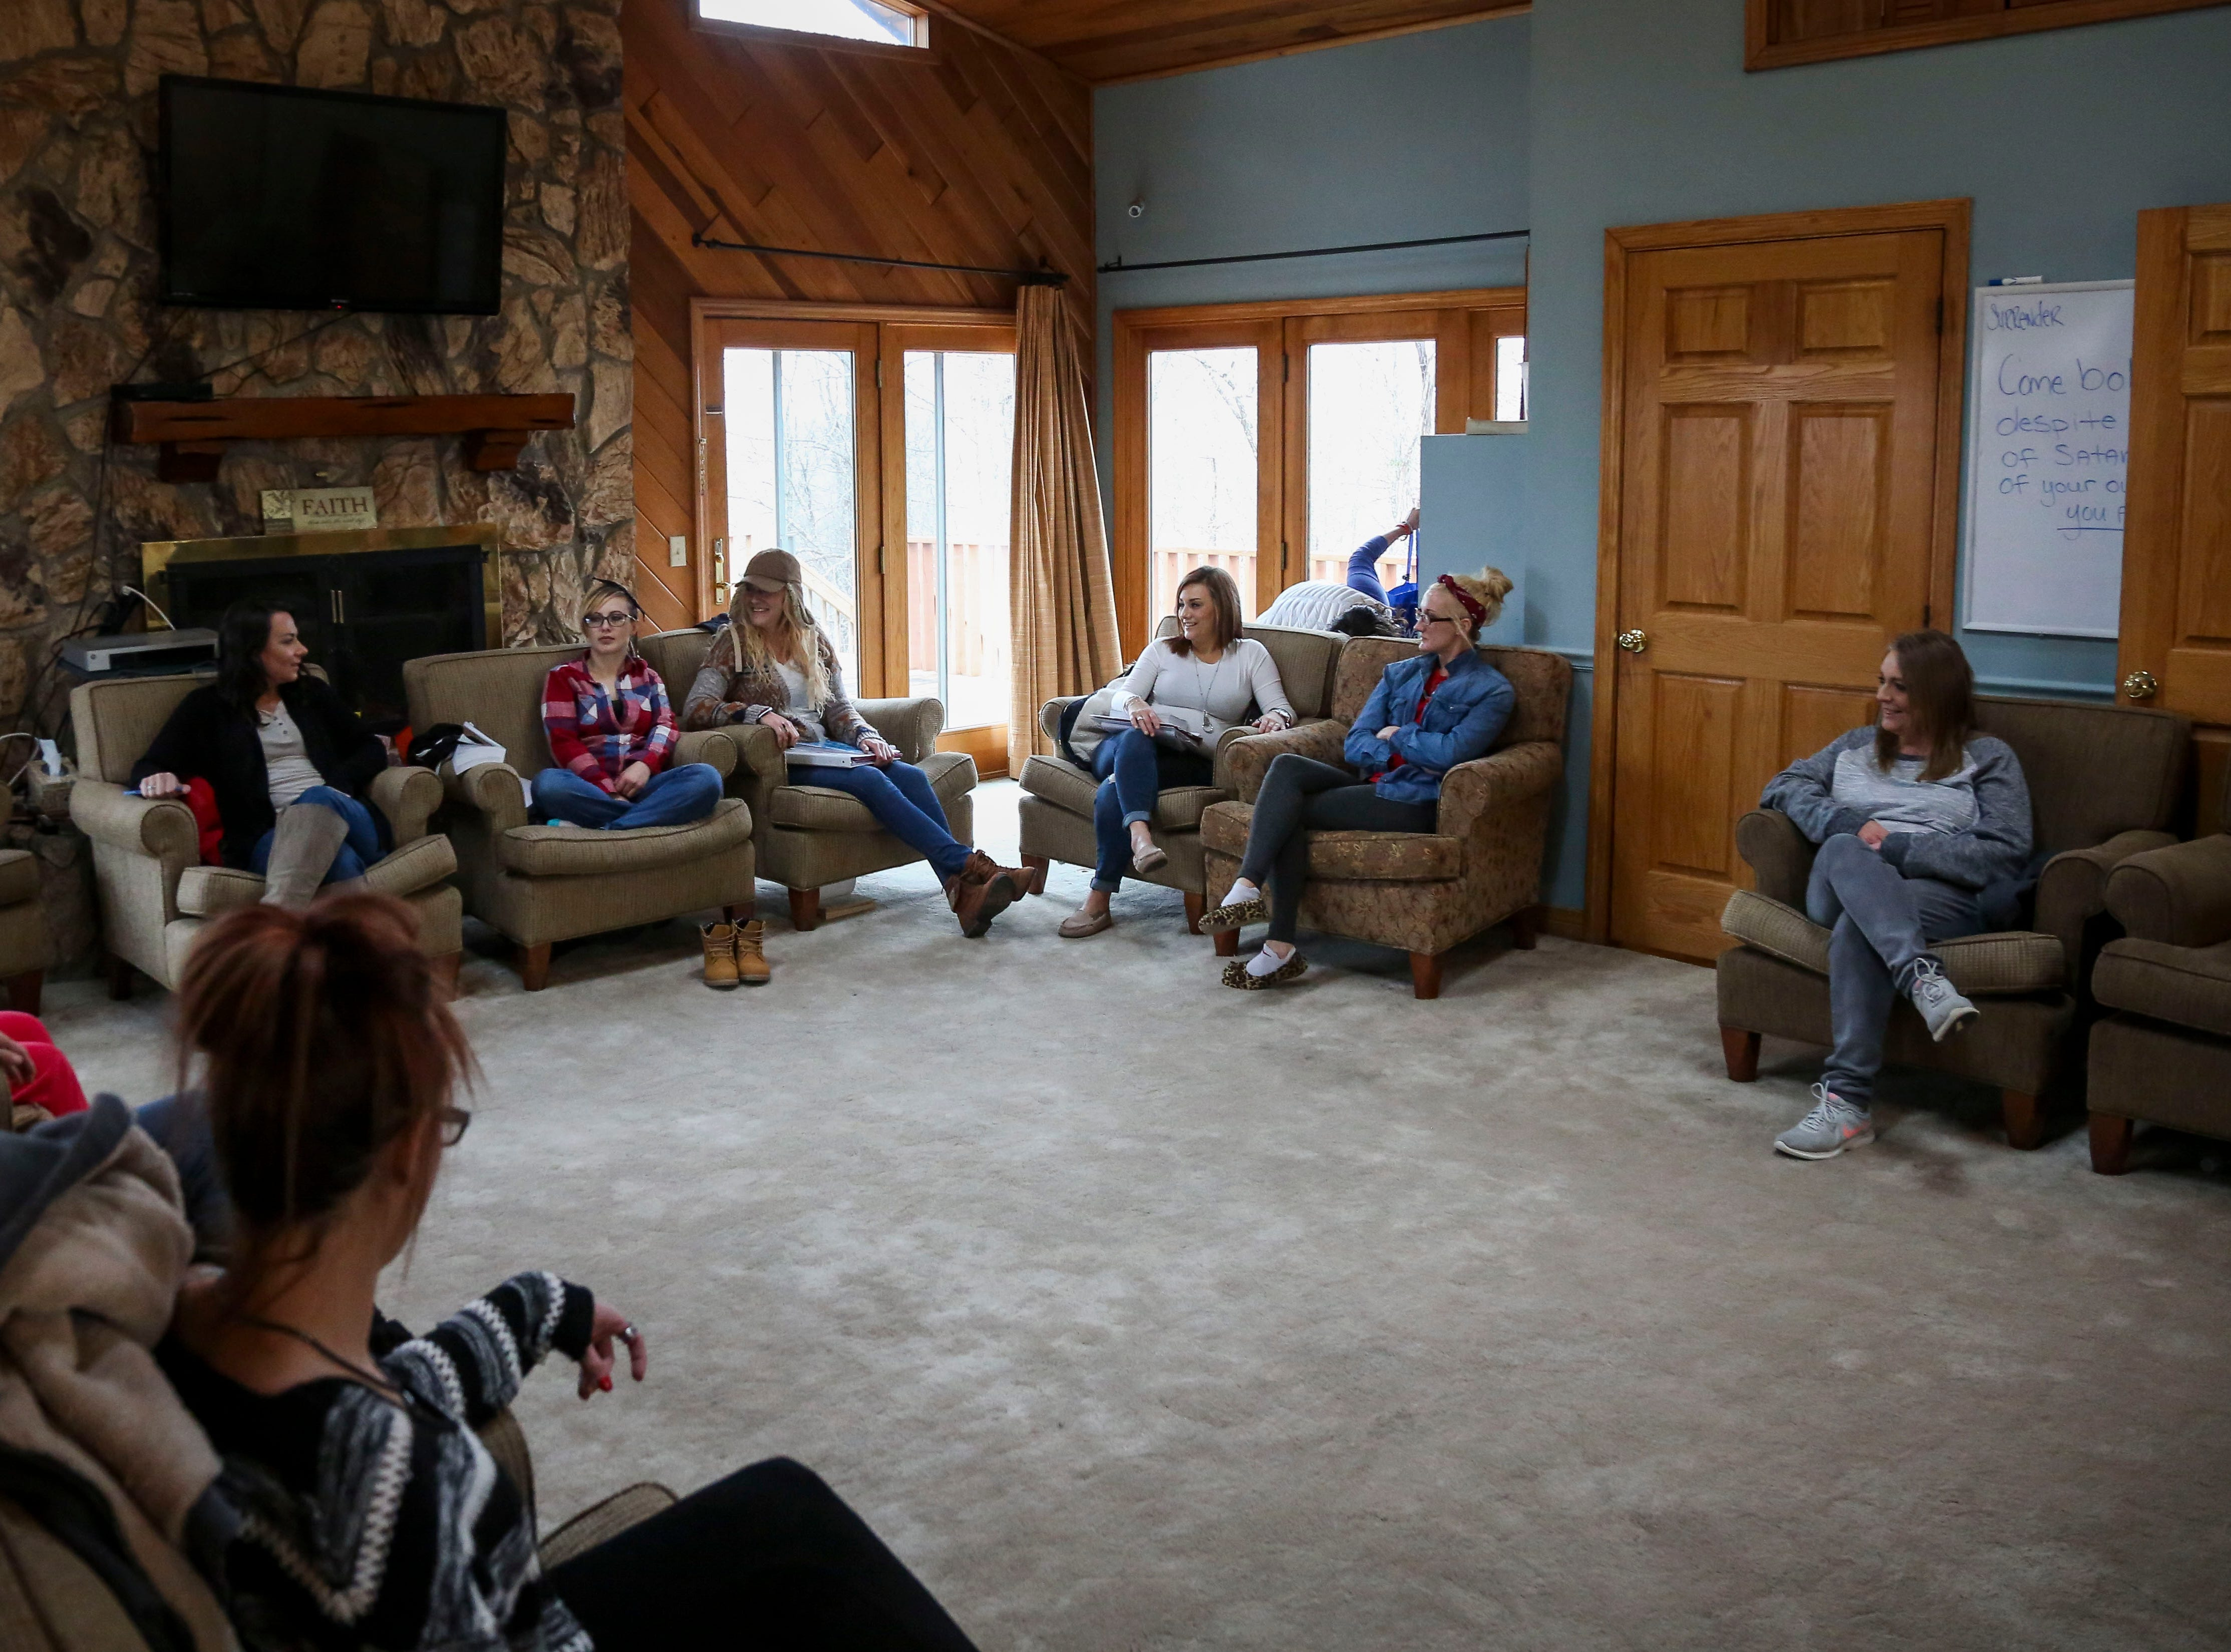 Women talk during a group session at Karen's Place, a drug rehab program run by Addiction Recovery Care (LLC), in Louisa, Kentucky, on Jan. 10, 2019.